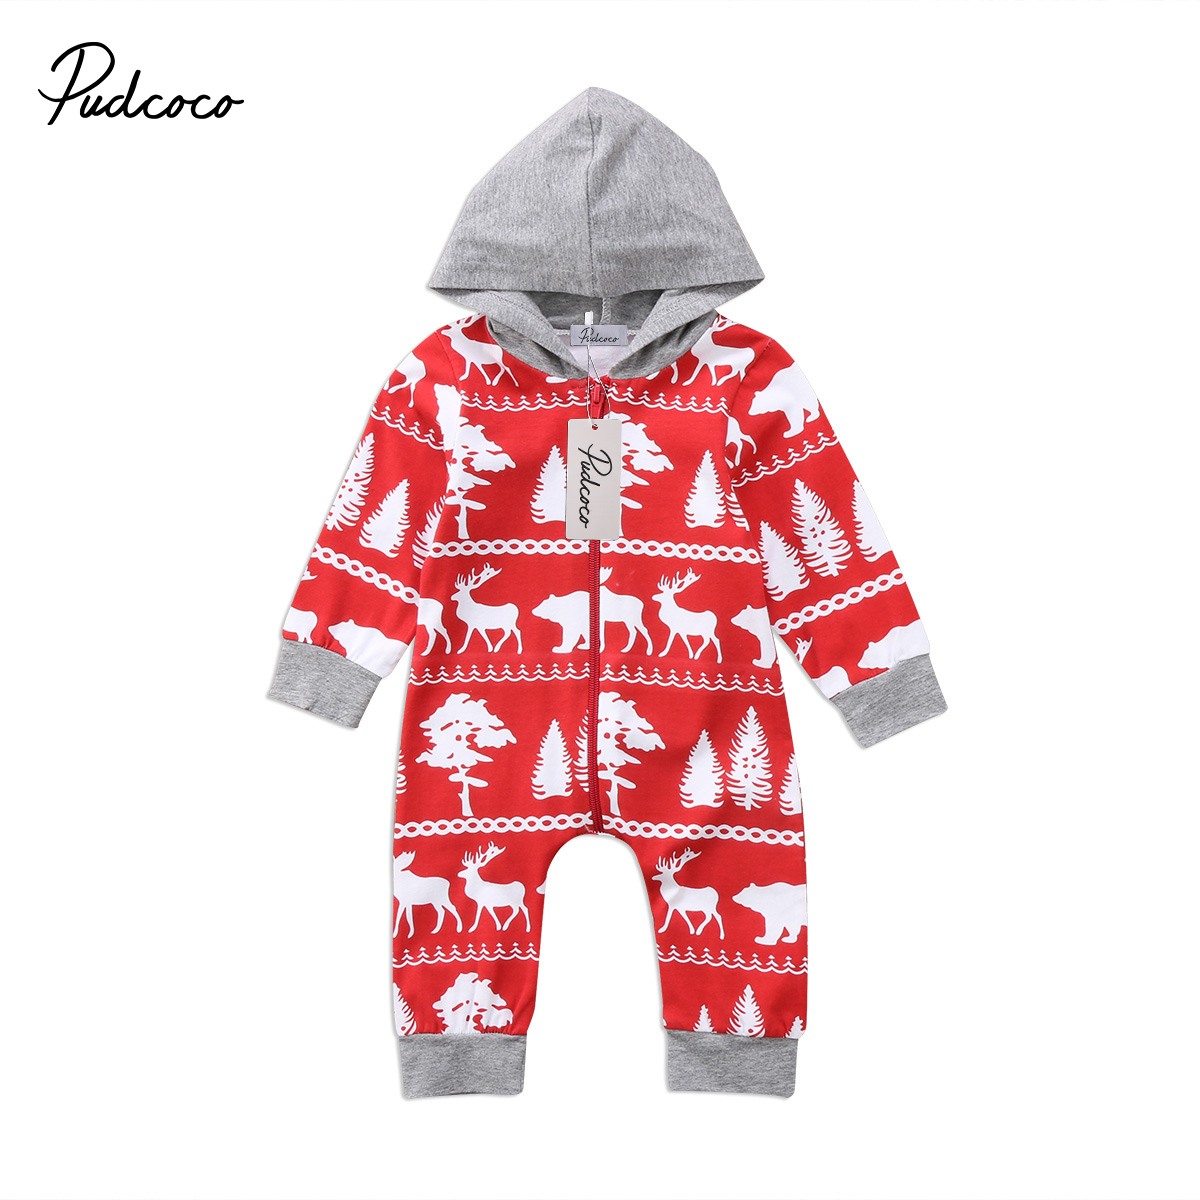 Aspiring Dog Clothing Pet Puppy Winter Warm Clothes Woolen Coverall Hoodie Striped Black Pant Dogs Jumpsuit Bib Hot Selling To Make One Feel At Ease And Energetic Home & Garden